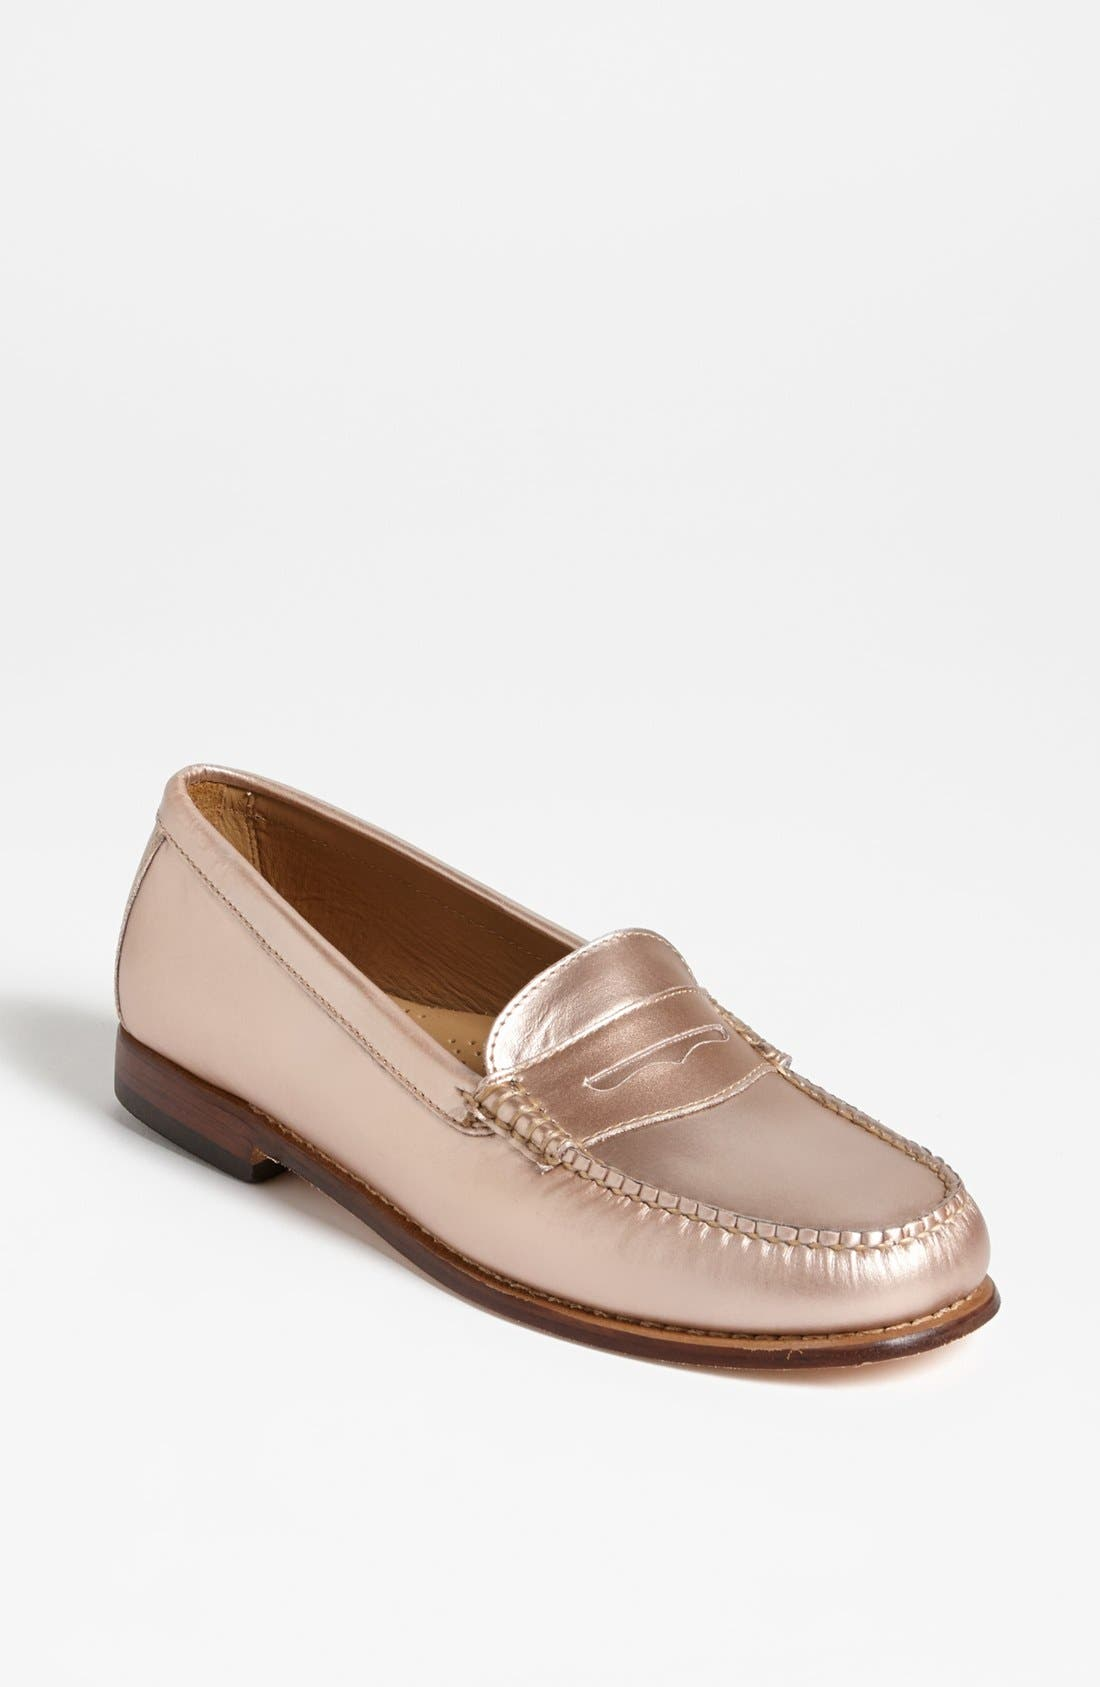 Alternate Image 1 Selected - G.H. Bass & Co. Metallic Leather Loafer Flat